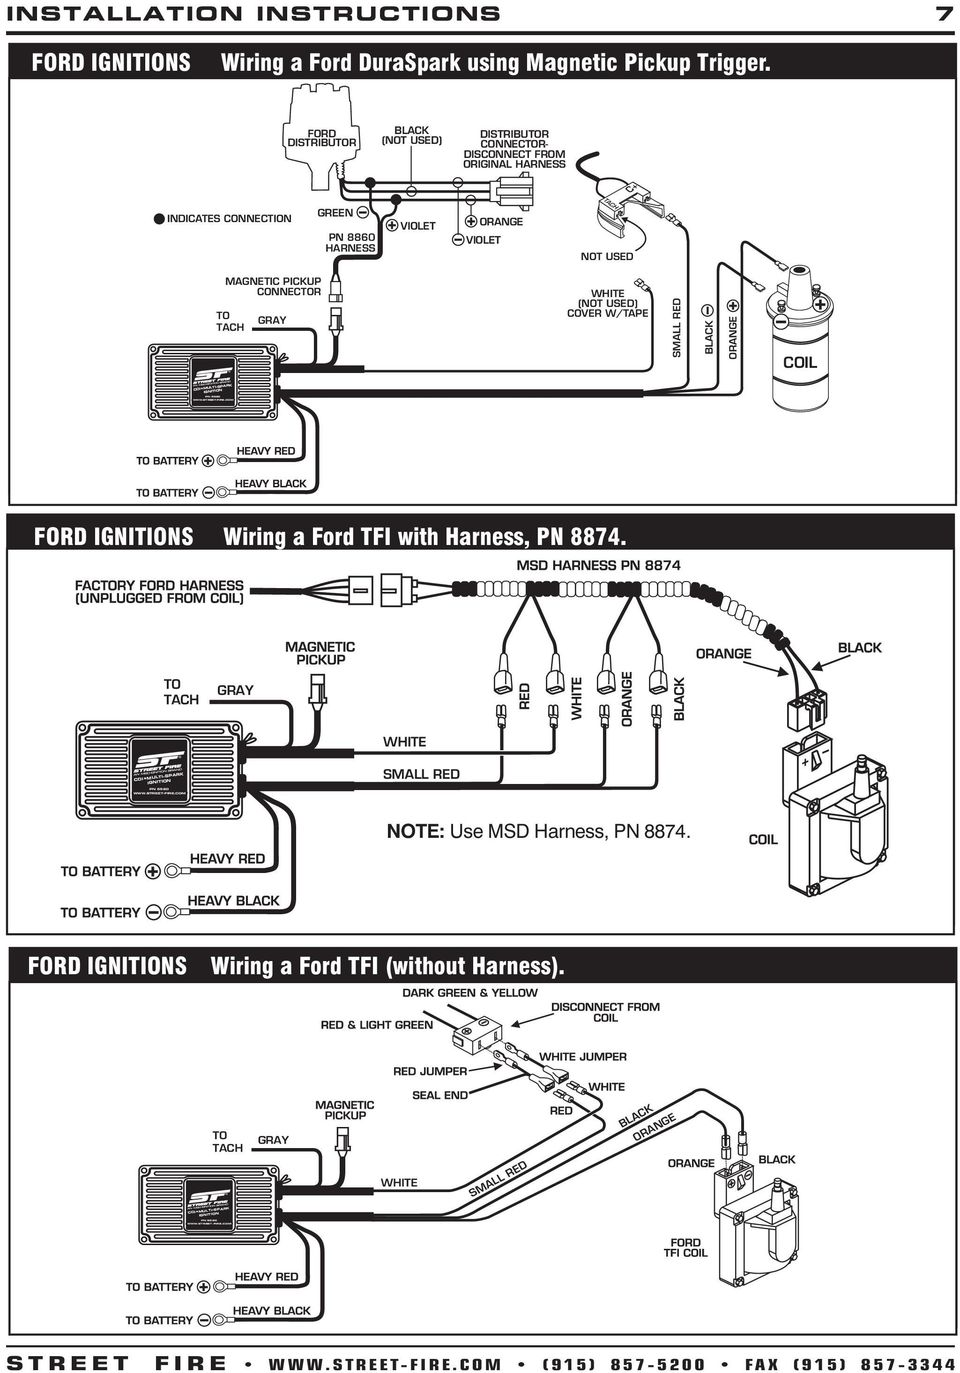 hight resolution of msd 5520 ignition wiring diagram msd ignition diagram ford duraspark ignition system ford duraspark ignition system